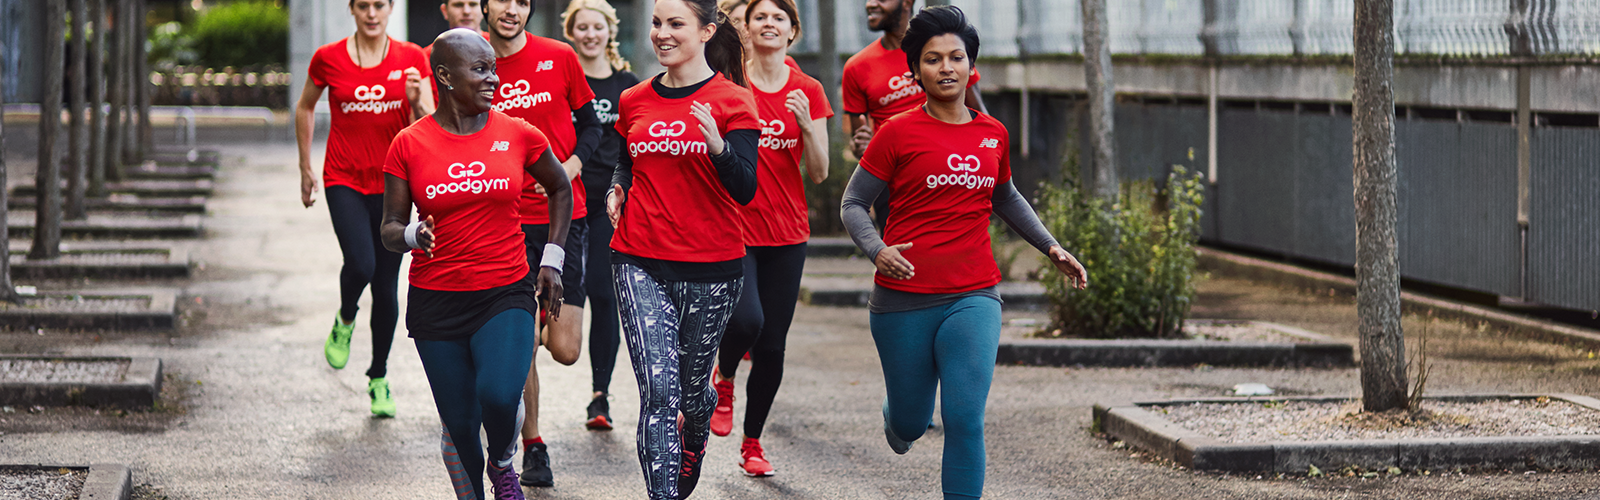 GoodGym Website Banner Images 1600x600